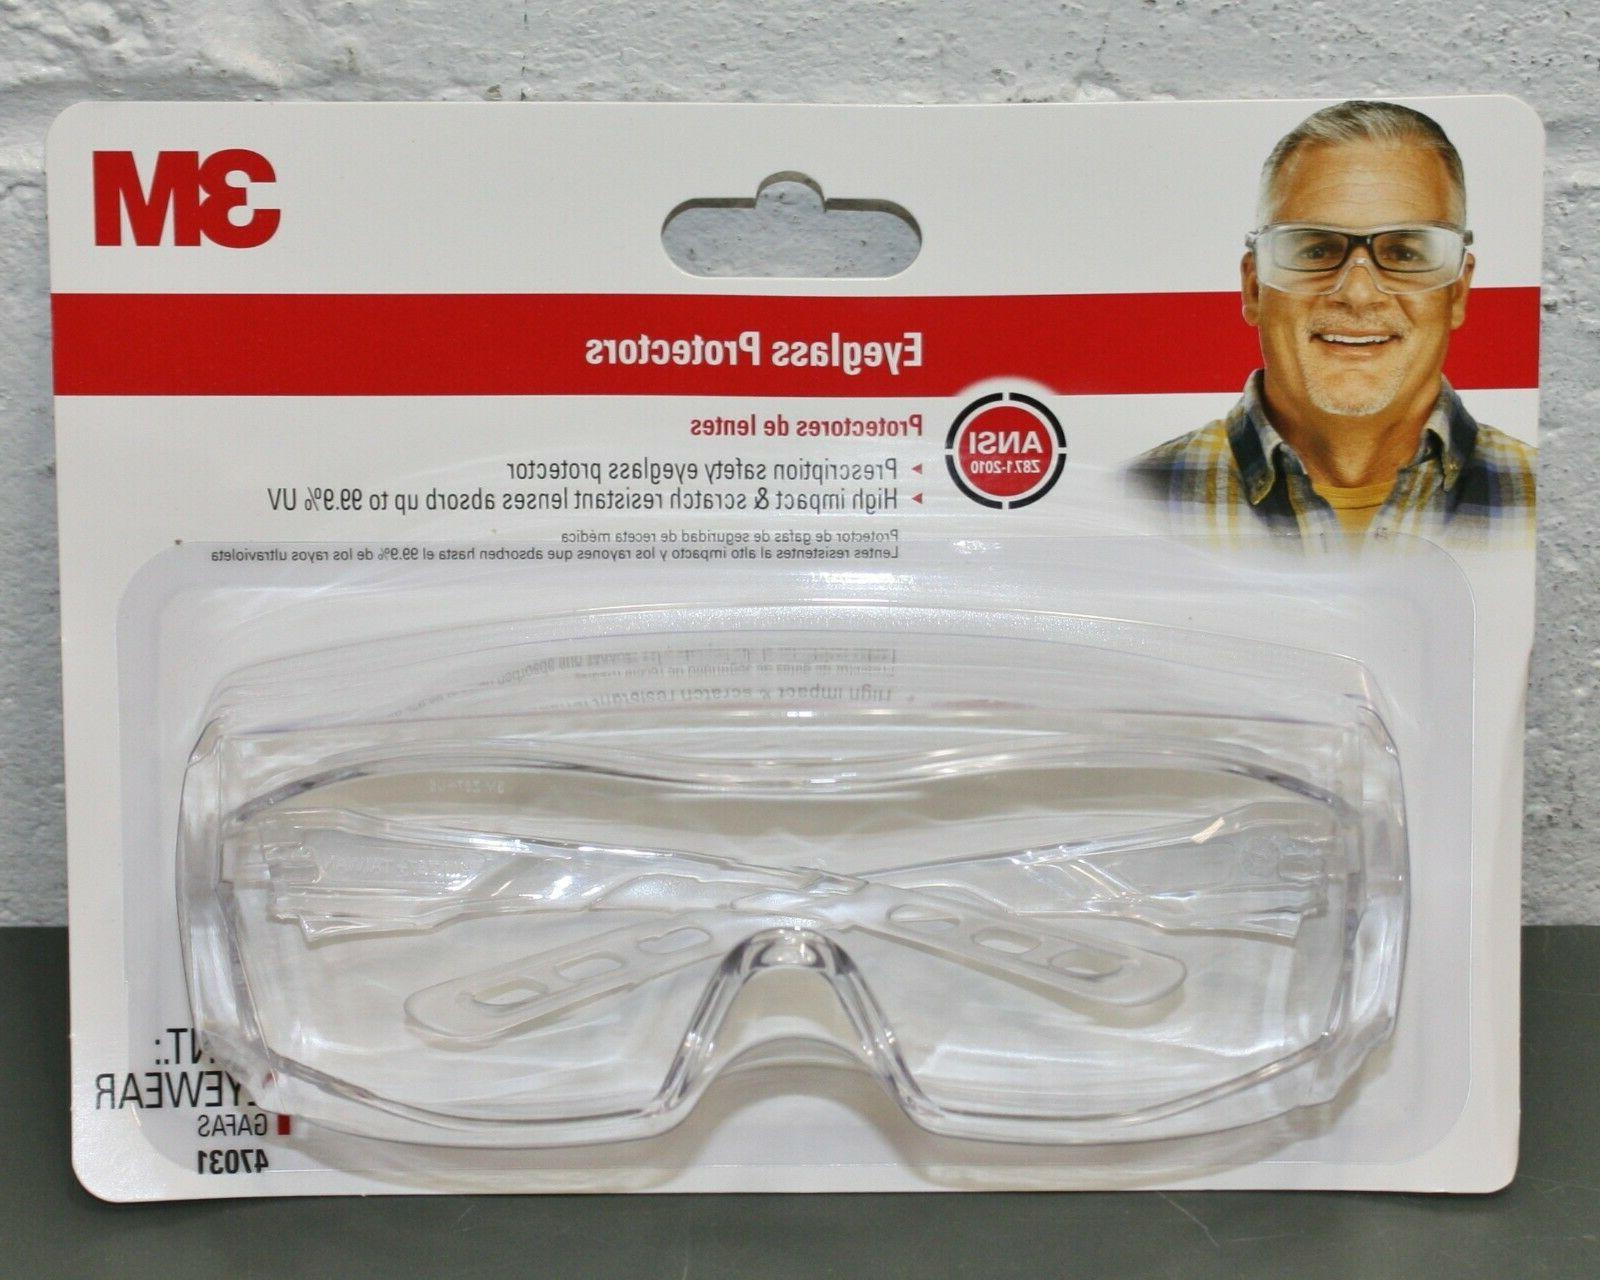 47031-wz6 eyeglass protectors with scratch resistant lens, f